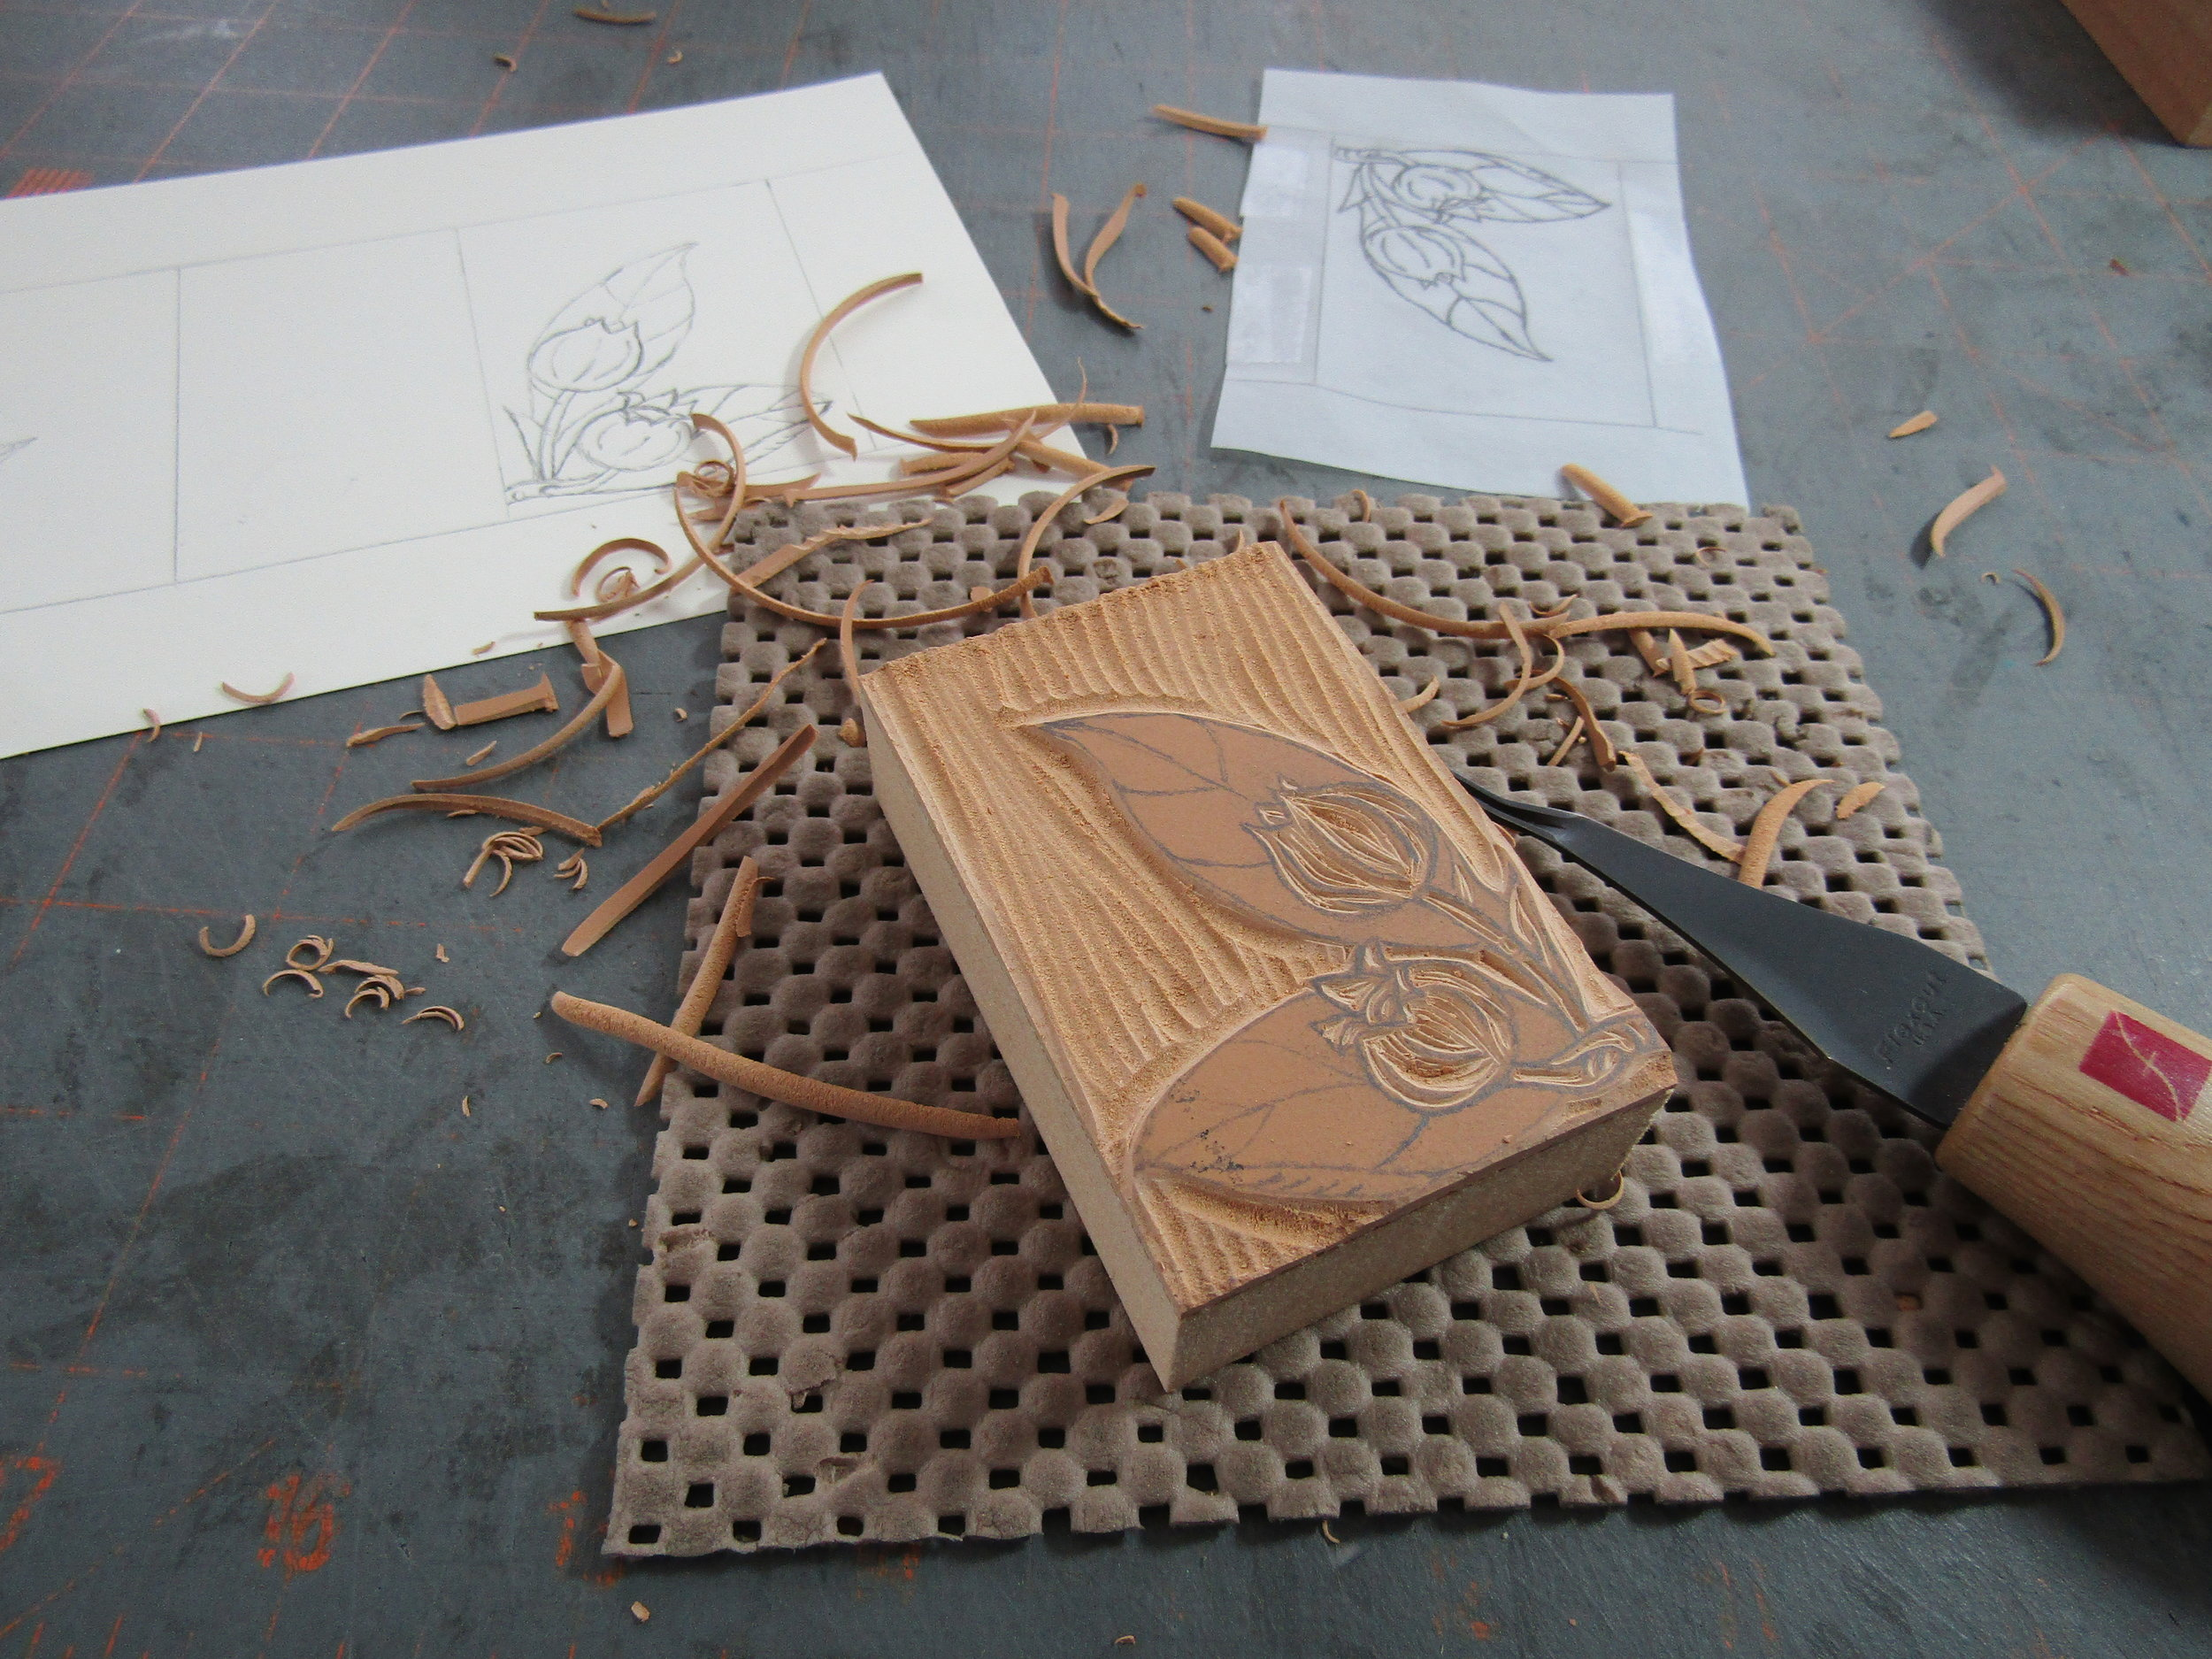 Carving the relief block. Notice the sketch, which I traced. I then transferred the image onto the block from the tracing paper image. Yes, my process is very 'old school'!